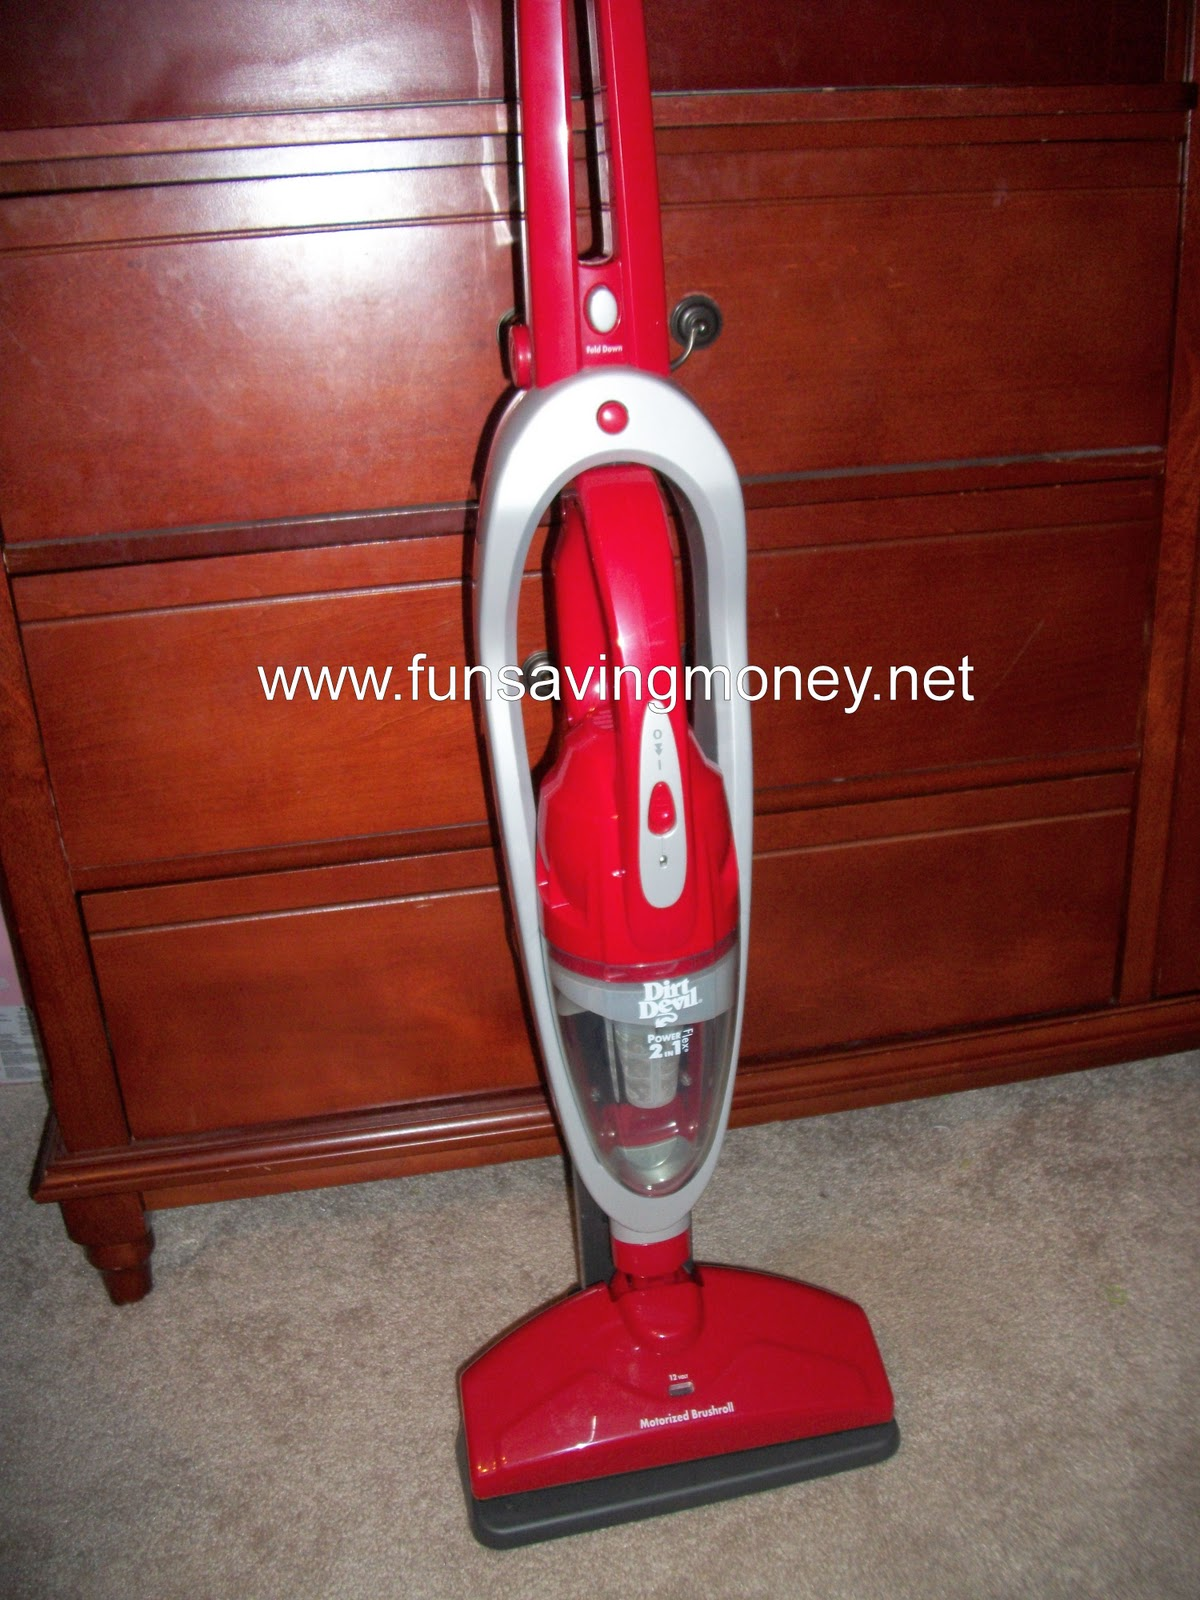 Dirt Devil Powerflex 2 N 1 Stick Vac Mom Luck